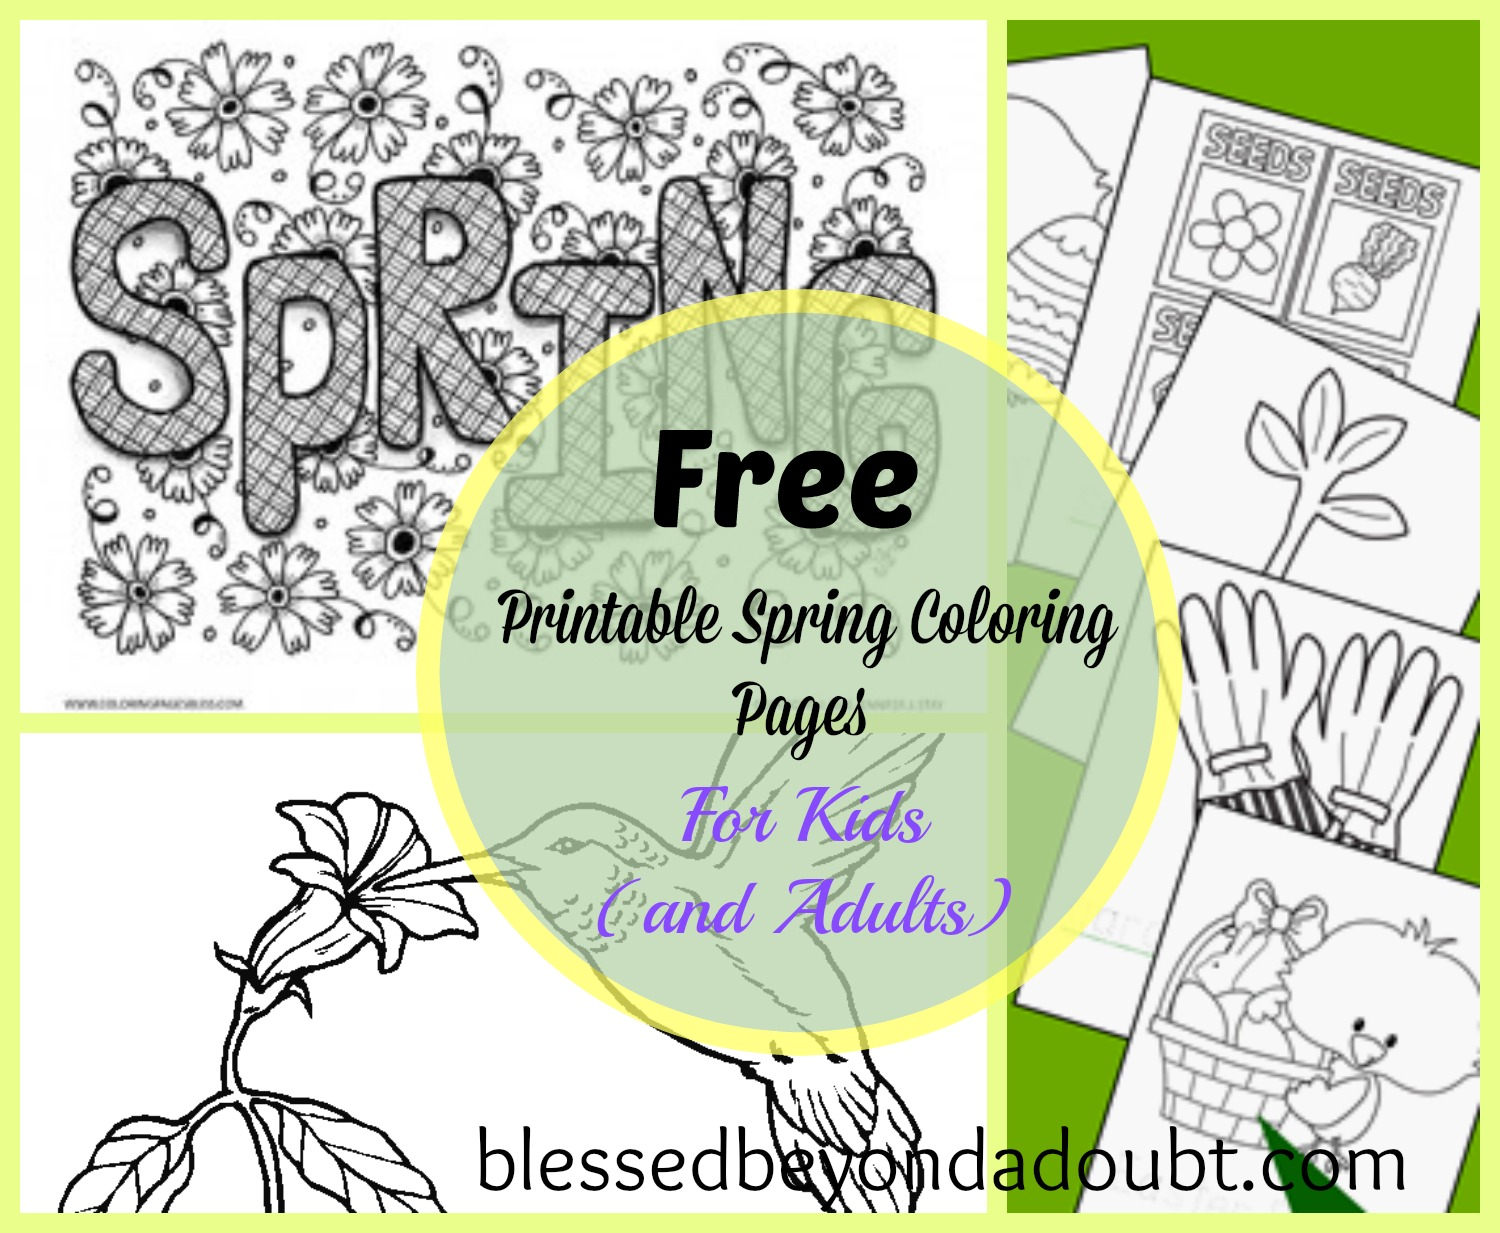 20 + Free Printable Spring Coloring Sheets For Kids (and Adults ...